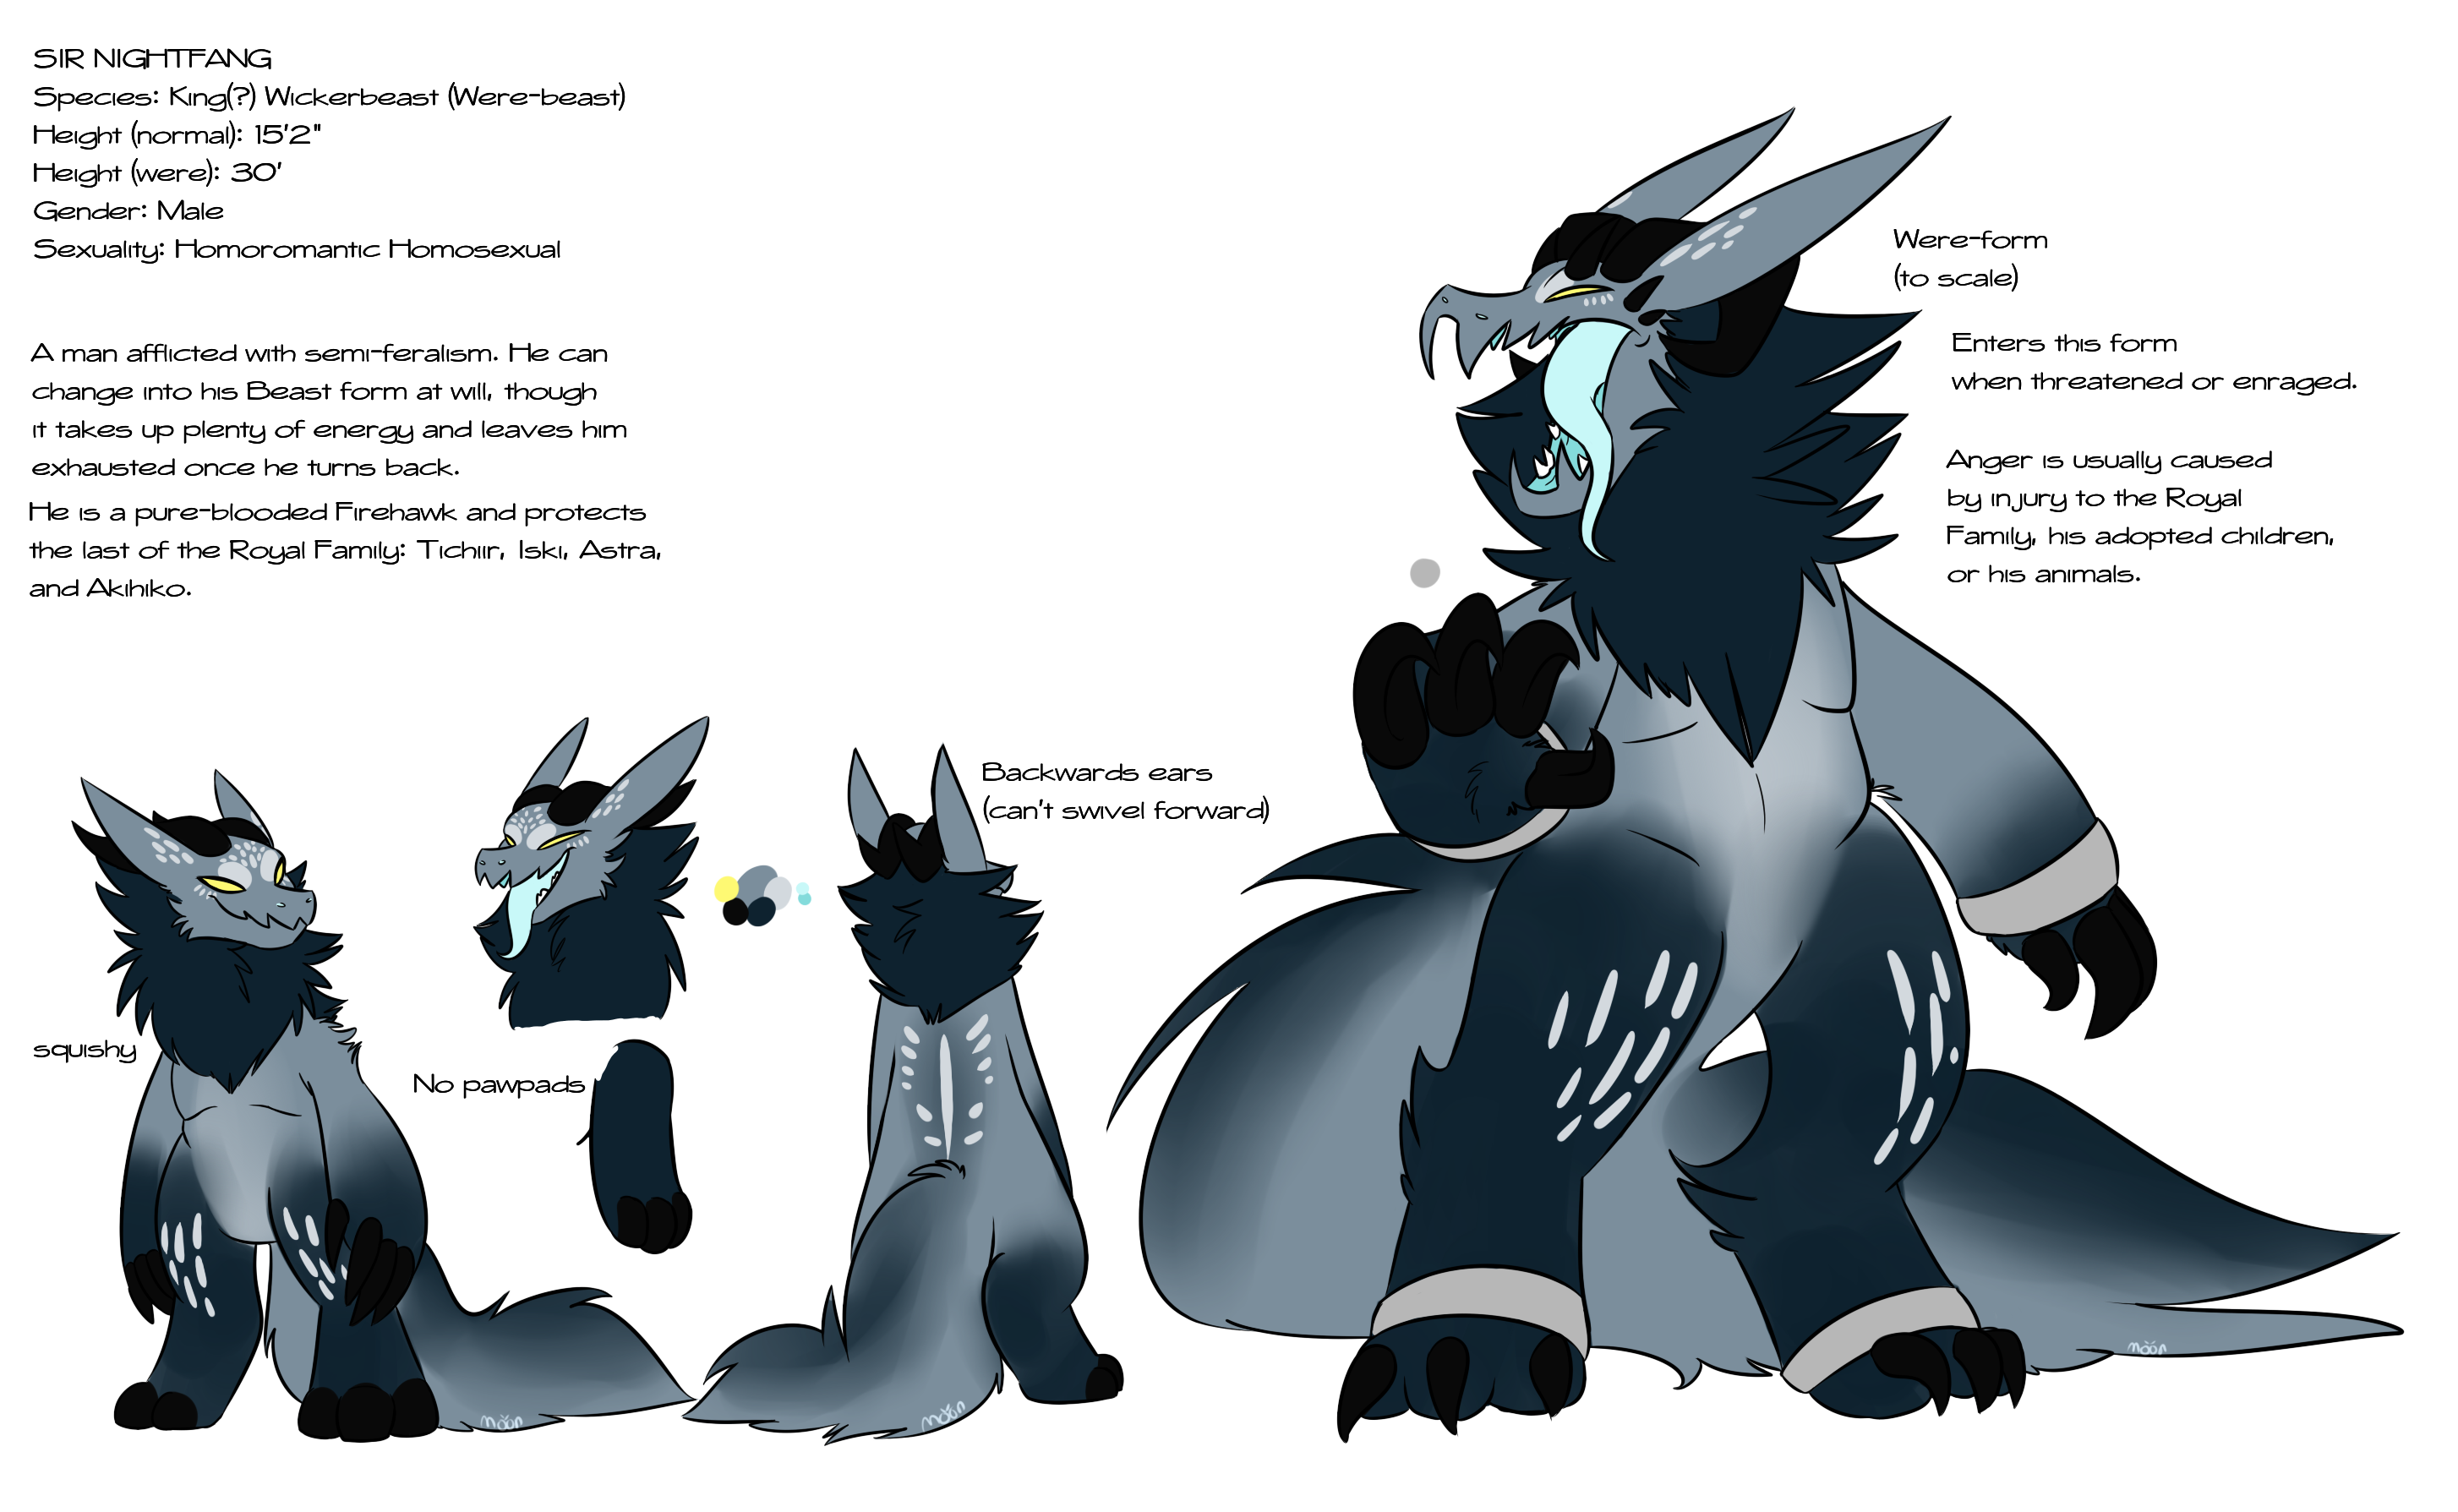 sir_nightfang_reference_by_moonlit_comet